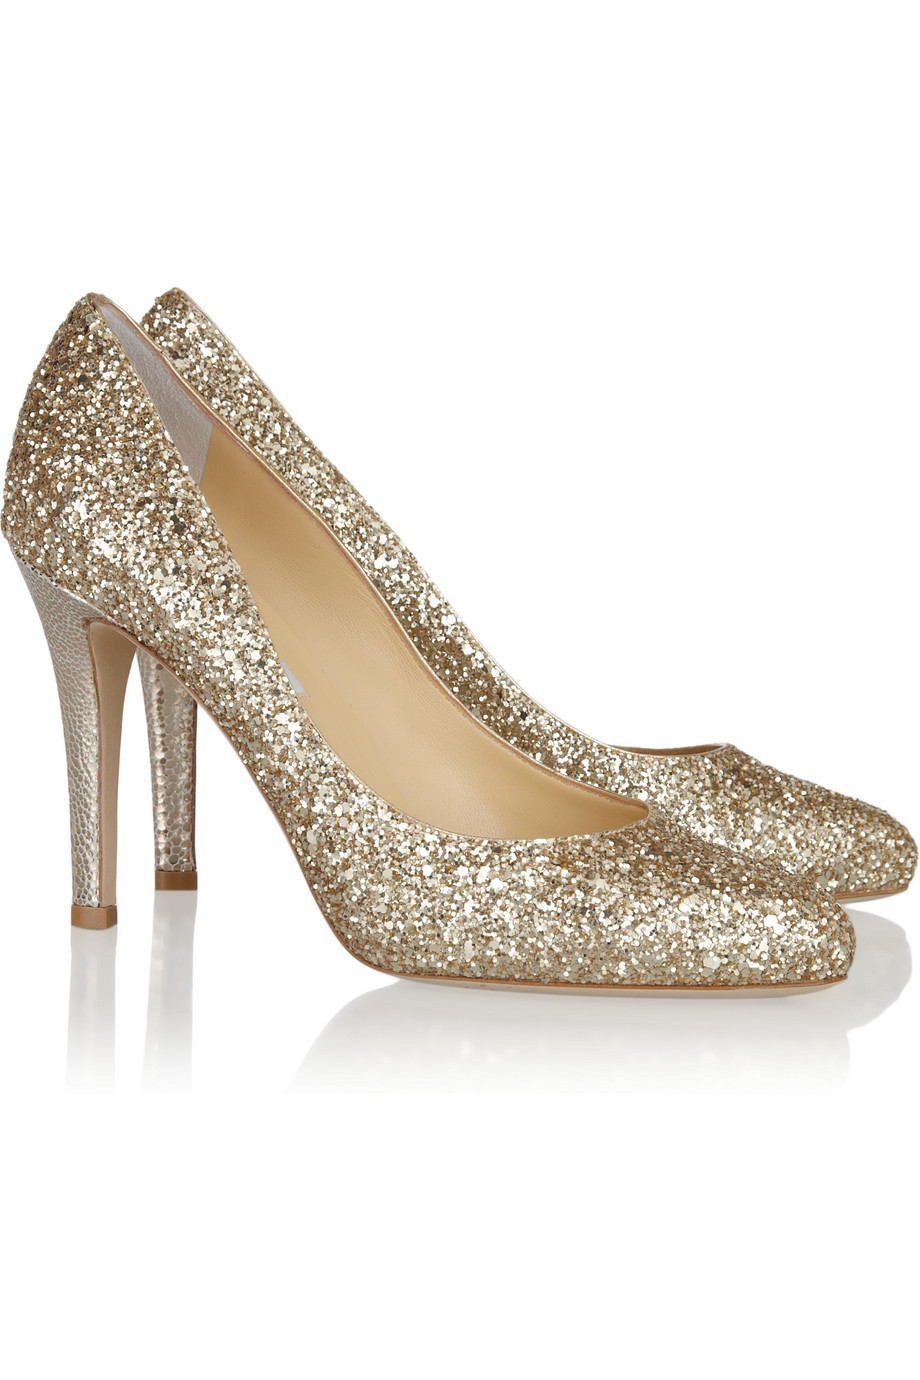 Discount Jimmy Choo Pumps - Product 198400